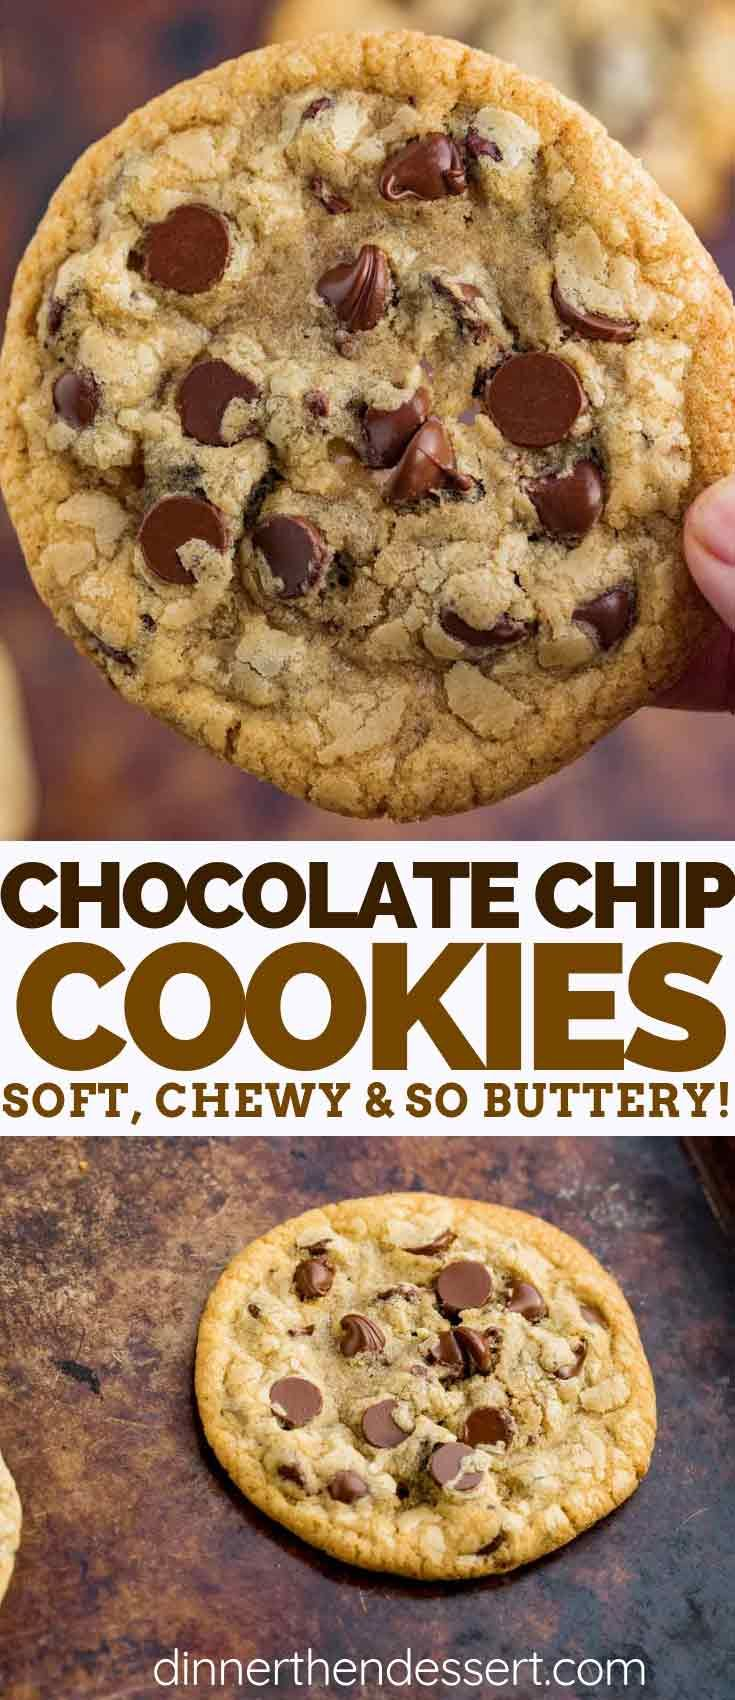 Chocolate Chip Cookies are a CLASSIC recipe that's soft, chewy, and made with on...